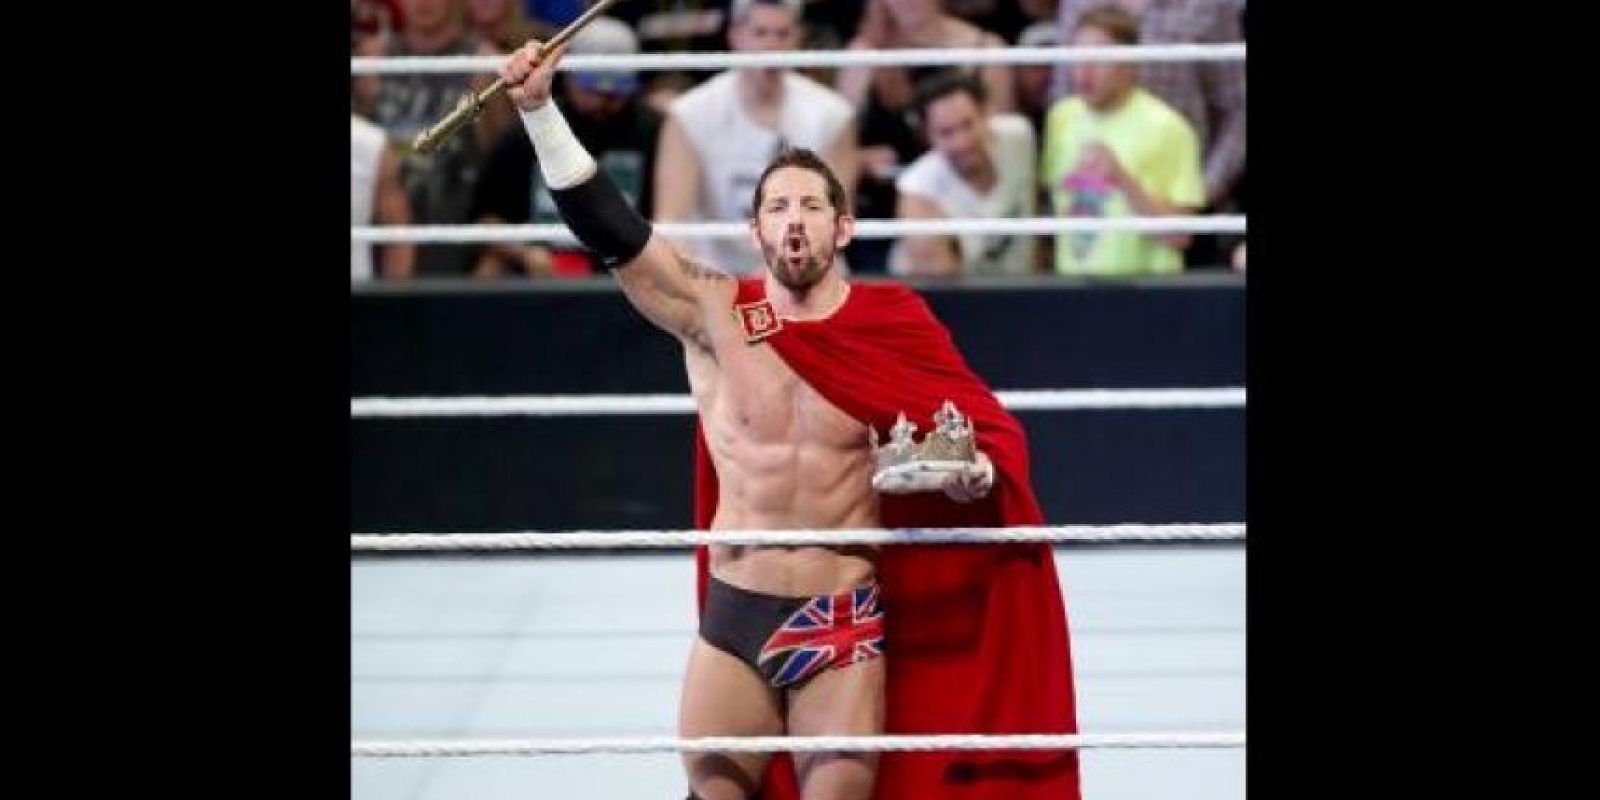 King Barrett Foto: WWE